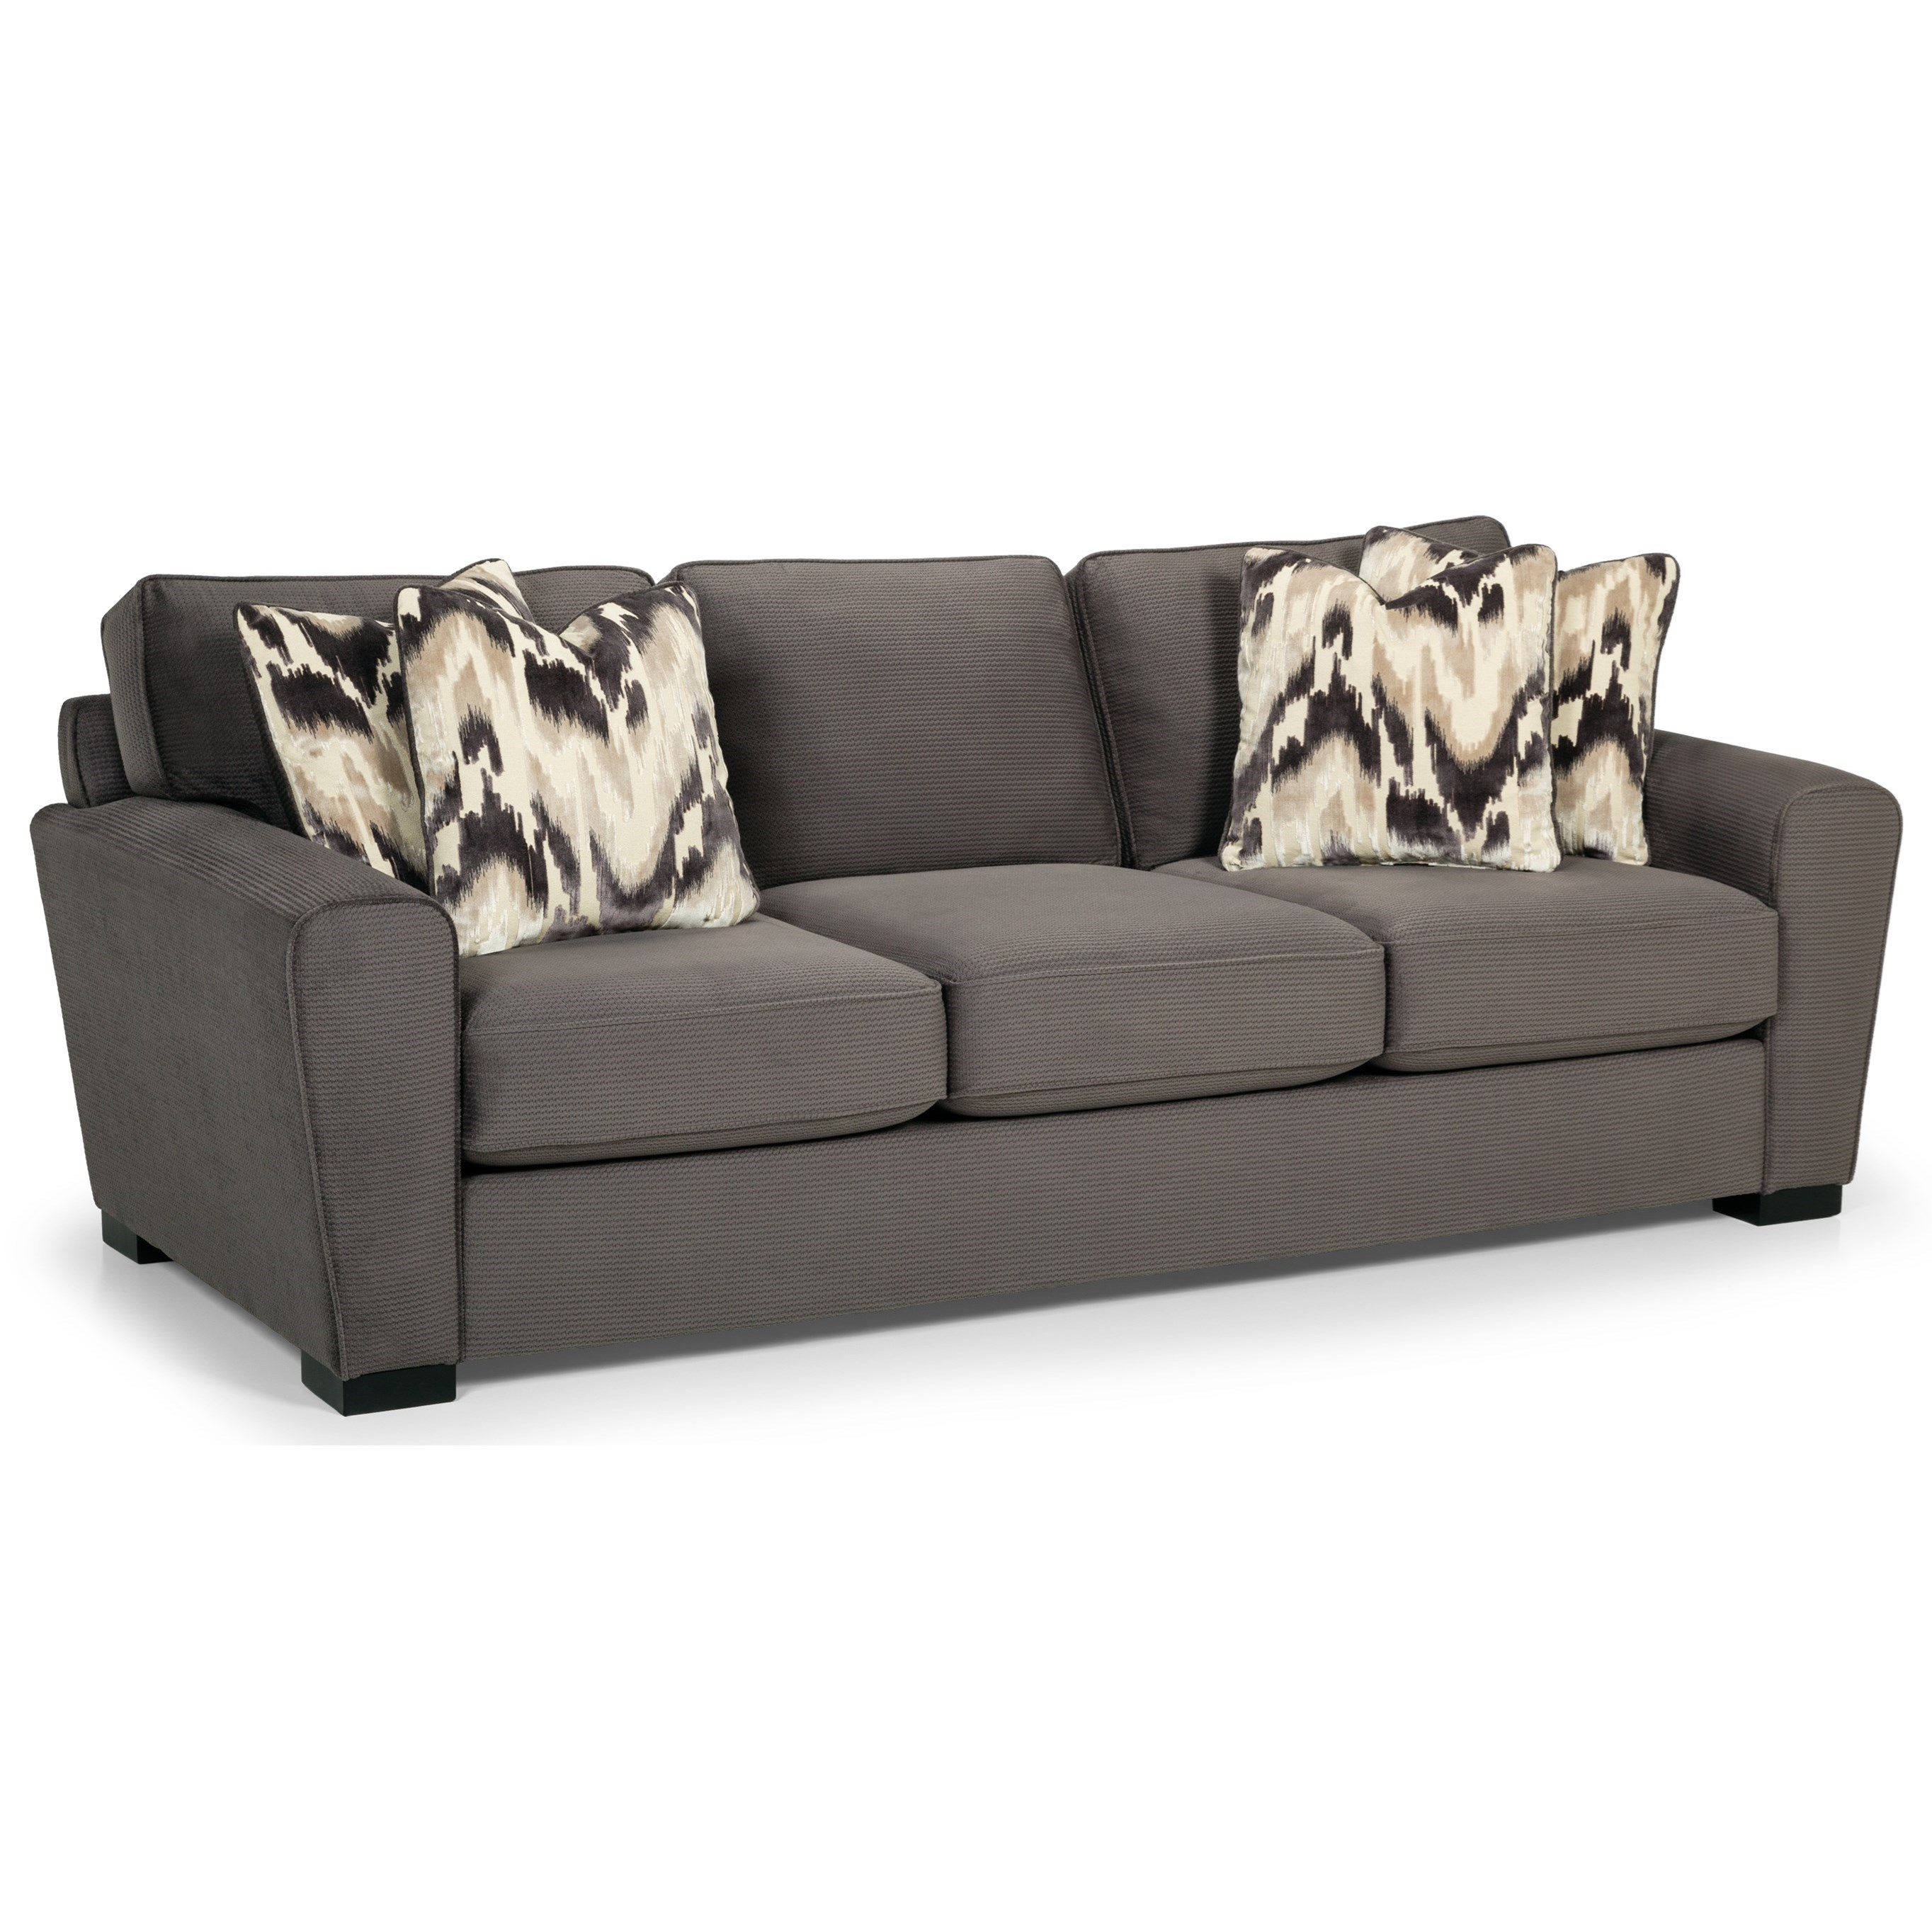 431 Sofa by Sunset Home at Sadler's Home Furnishings